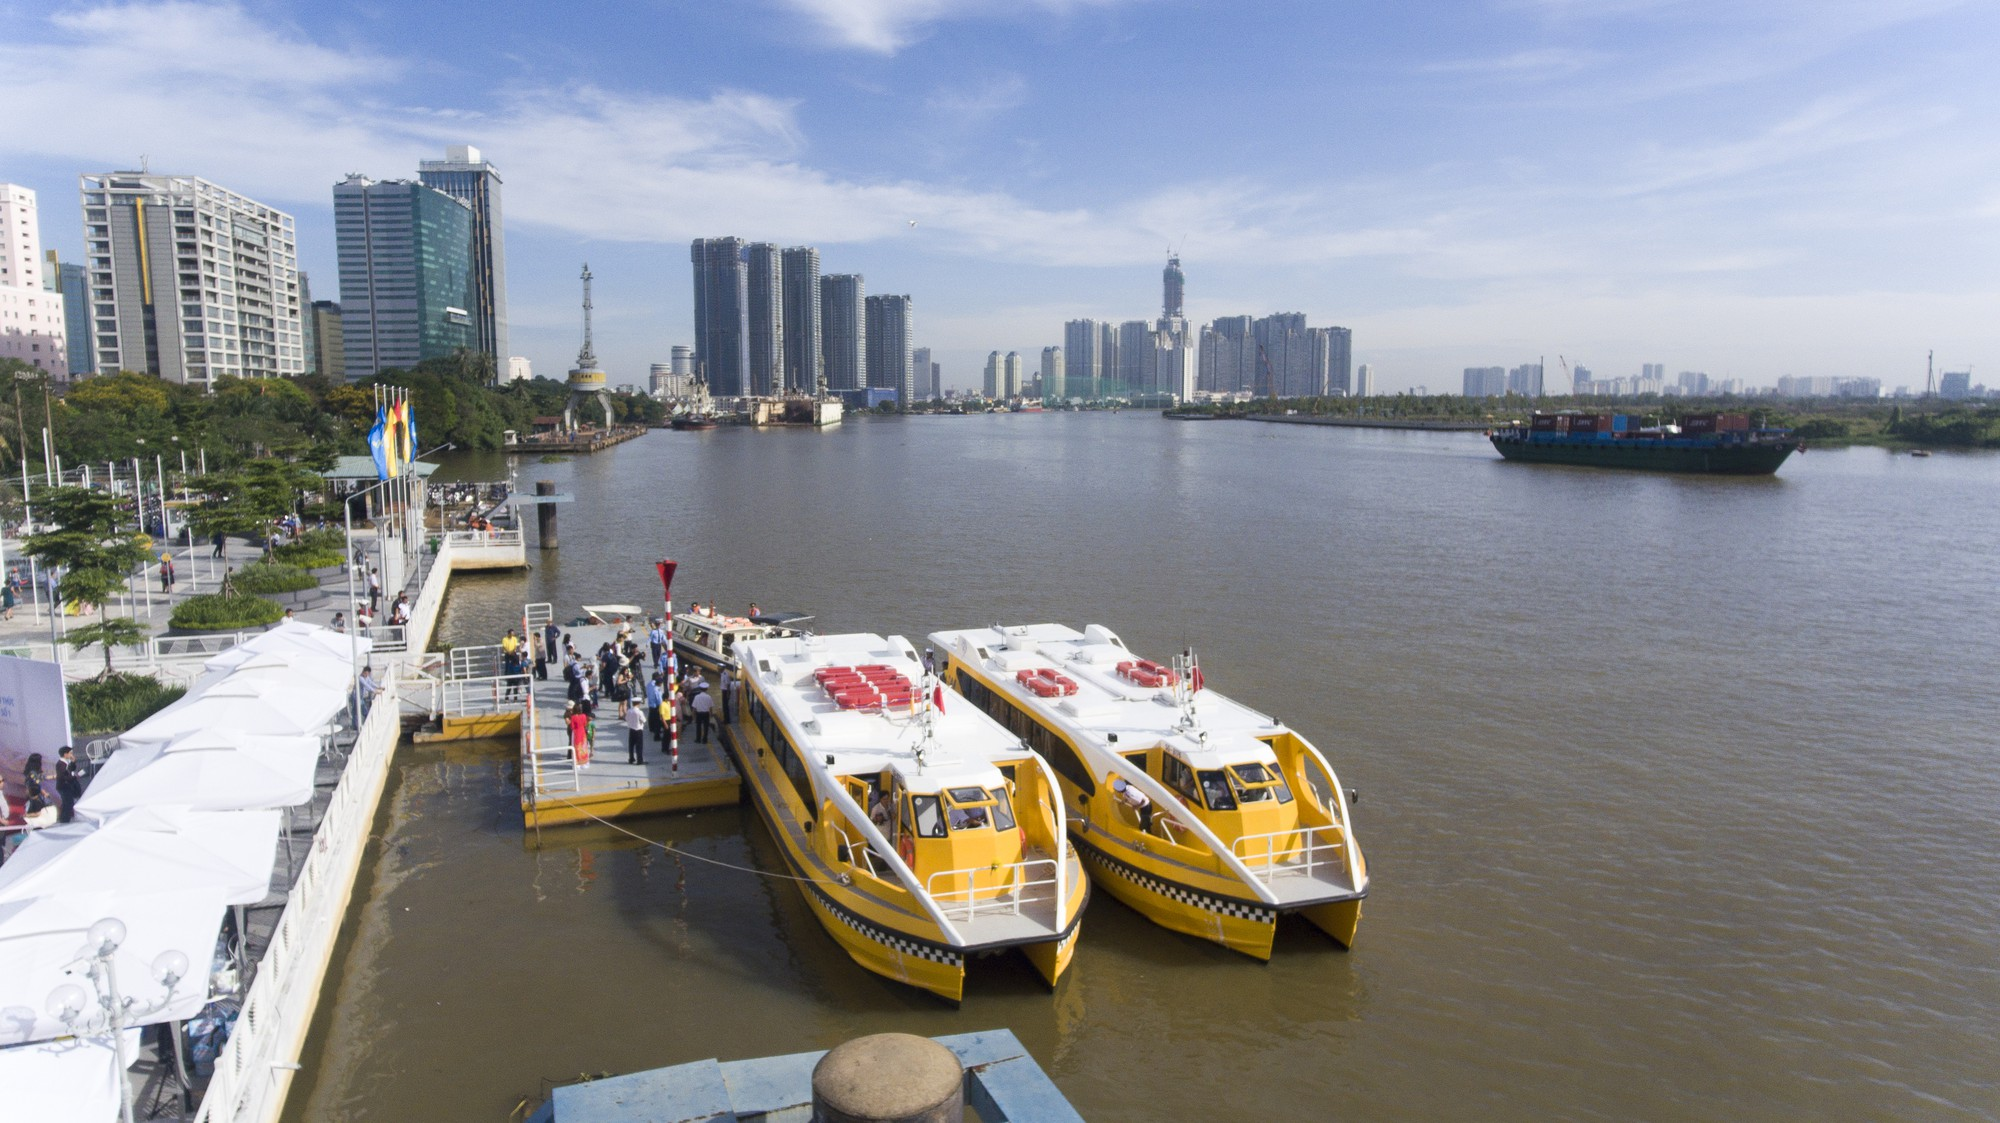 Two boats are ready for the operation of the river bus route No. 1 at Bach Dang Wharf in District 1, Ho Chi Minh City, on November 25, 2017. Photo: Tuoi Tre